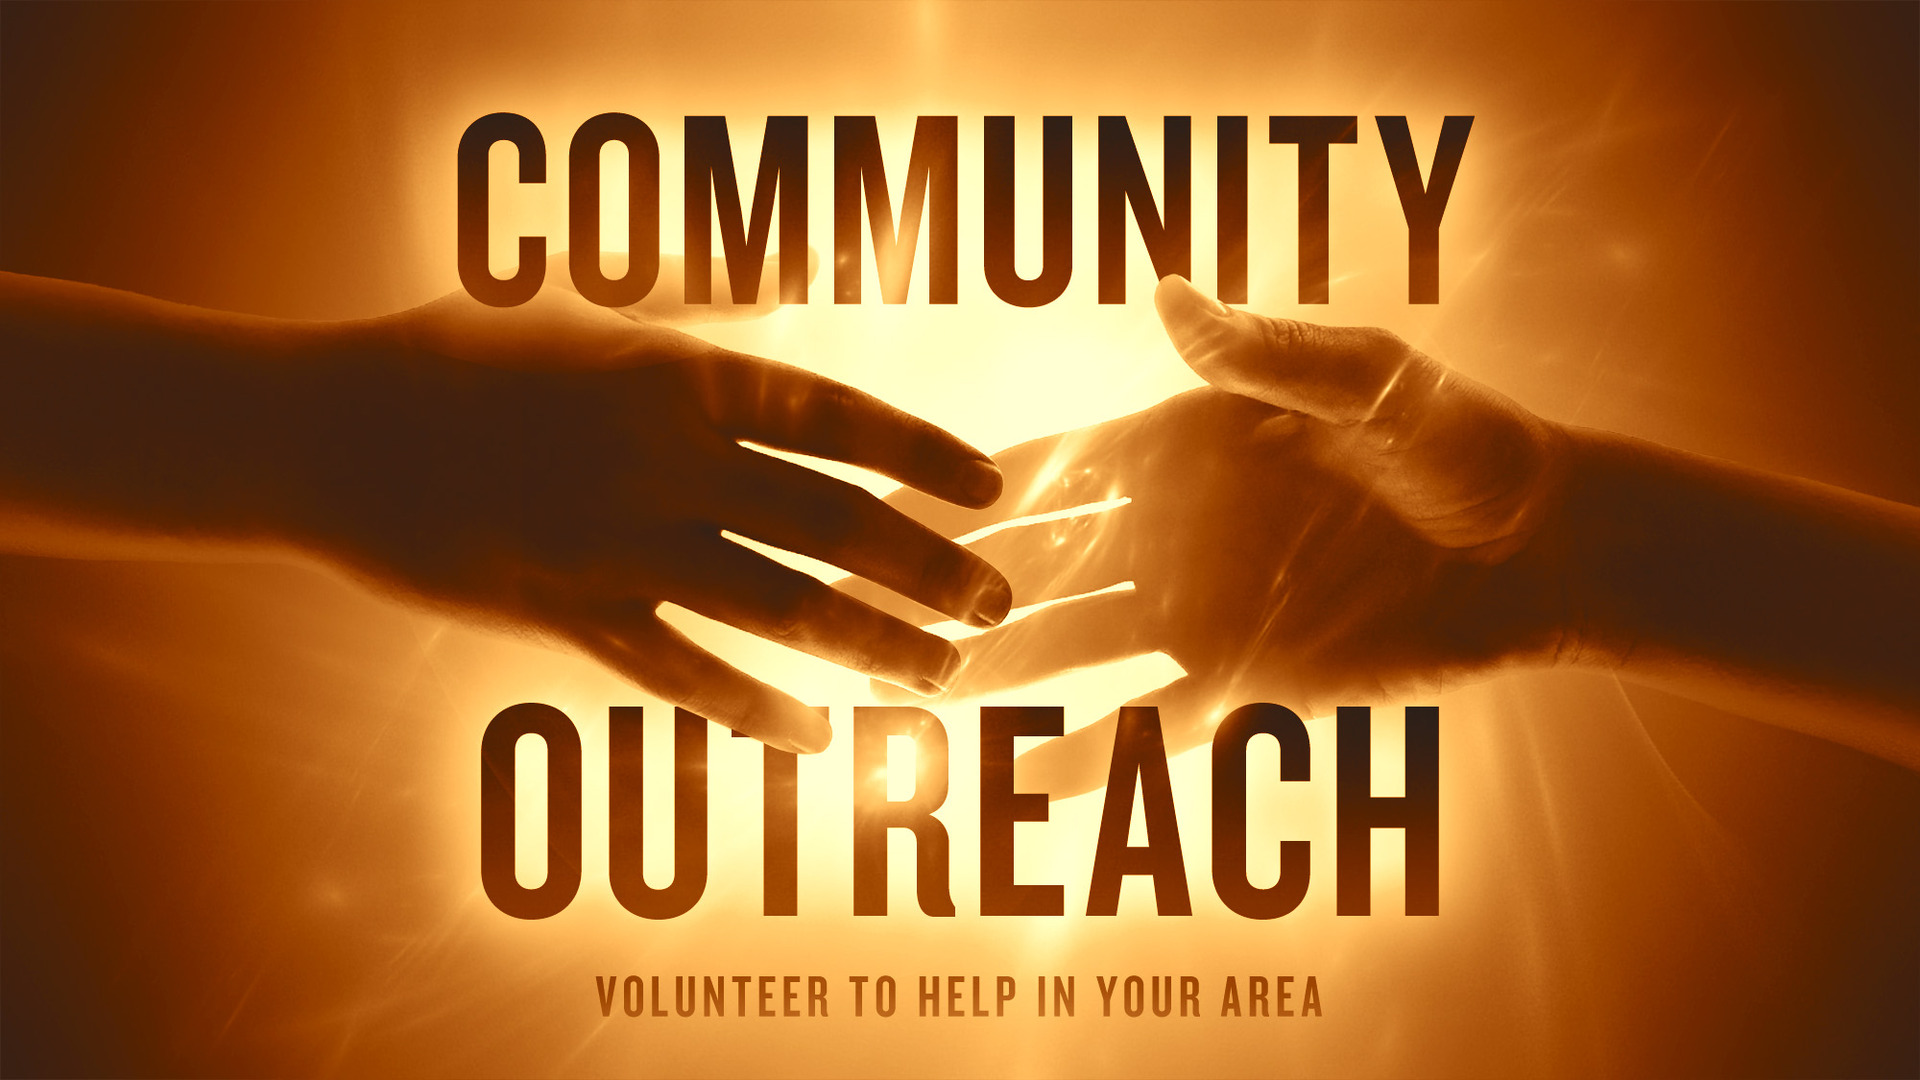 - The Outreach Department focuses on sharing the tangible love of Jesus to the